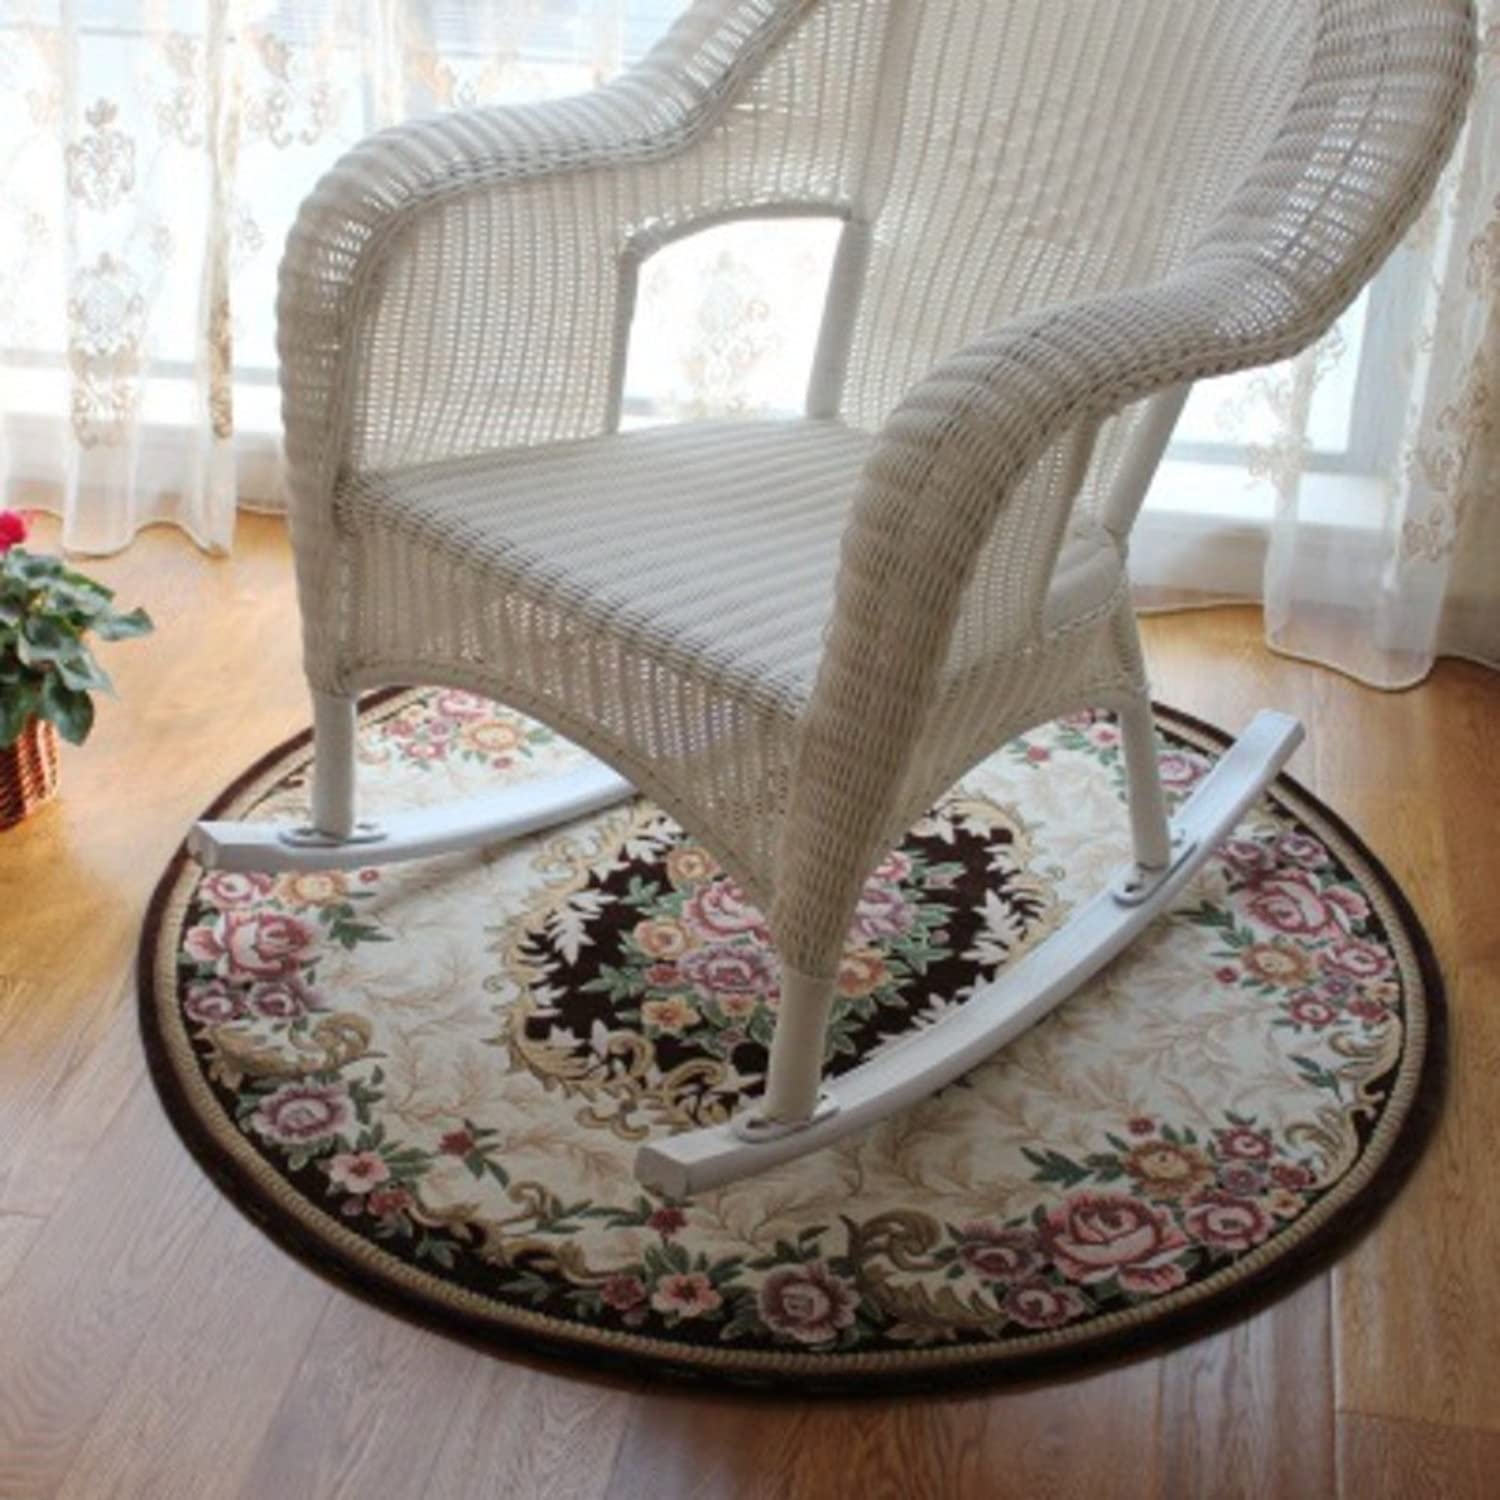 Round Mat Company Chair,Water-Absorption Carpet Rug European mat Non-Slip Symmetrical Round Design Modern Simple for Living Room or Bedroom-B Diameter 47inchThickness 0.31